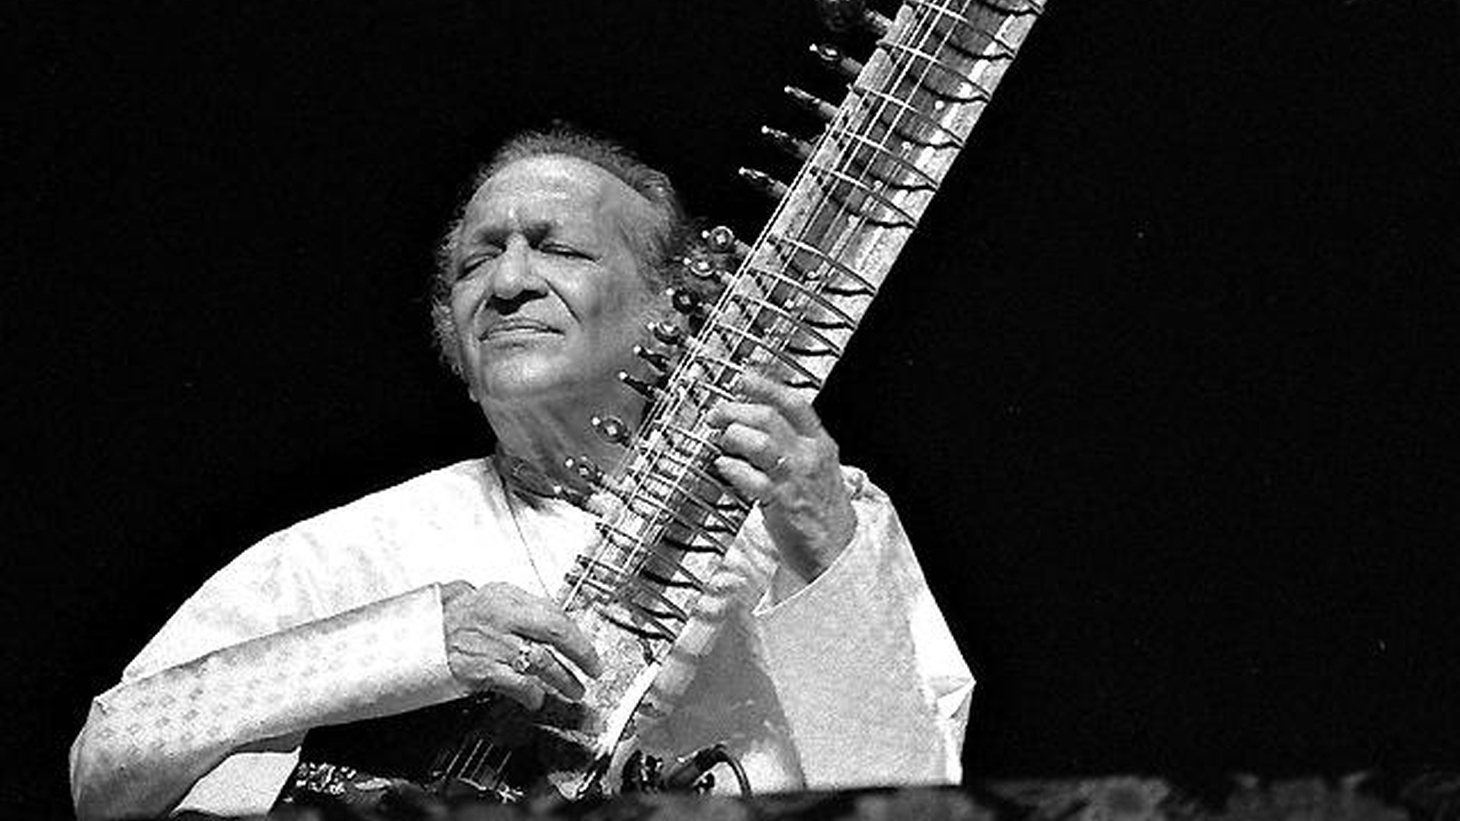 "Today, we celebrate Ravi Shankar's 90th birthday. Born into an orthodox Brahmin family, the classically trained sitar master has remained true to his roots while influencing many Western musicians, including The Beatles. Today's Top Tune, from the Nine Decades album, is an unusual piece. It's a devotional chant introduced by Ravi Shankar as he rehearses with temple priests for the filming of 'Raga,' a documentary film produced by George Harrison circa 1968. Today's Top Tune is ""Durga Suktam & Durga Stotram""."